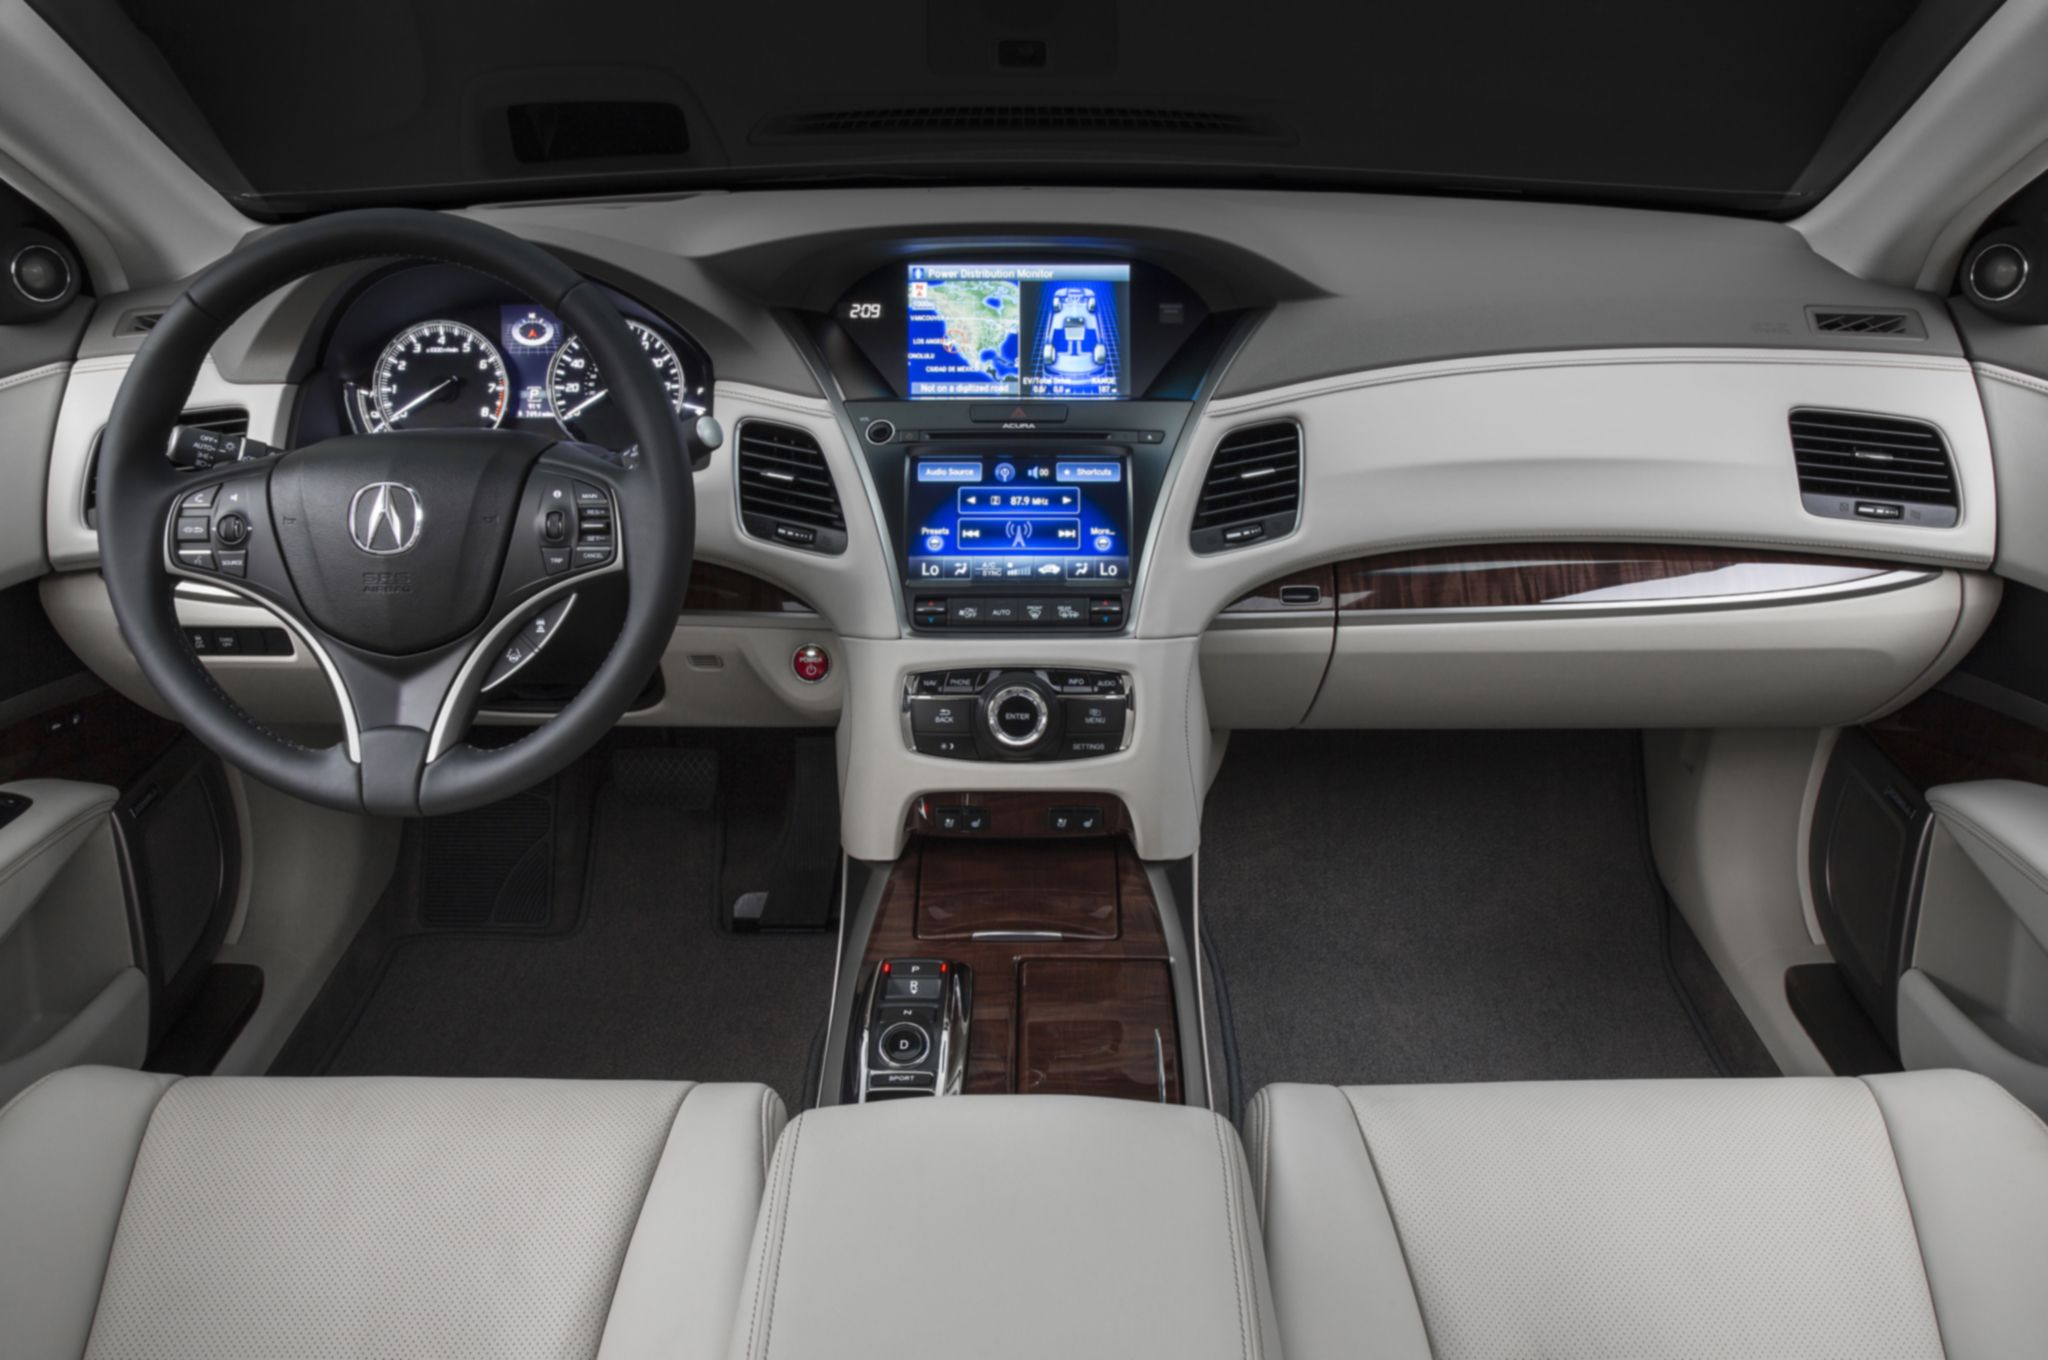 rlx capsule for rl review cars the hybrid about acura sport truth new best cargurus sale of